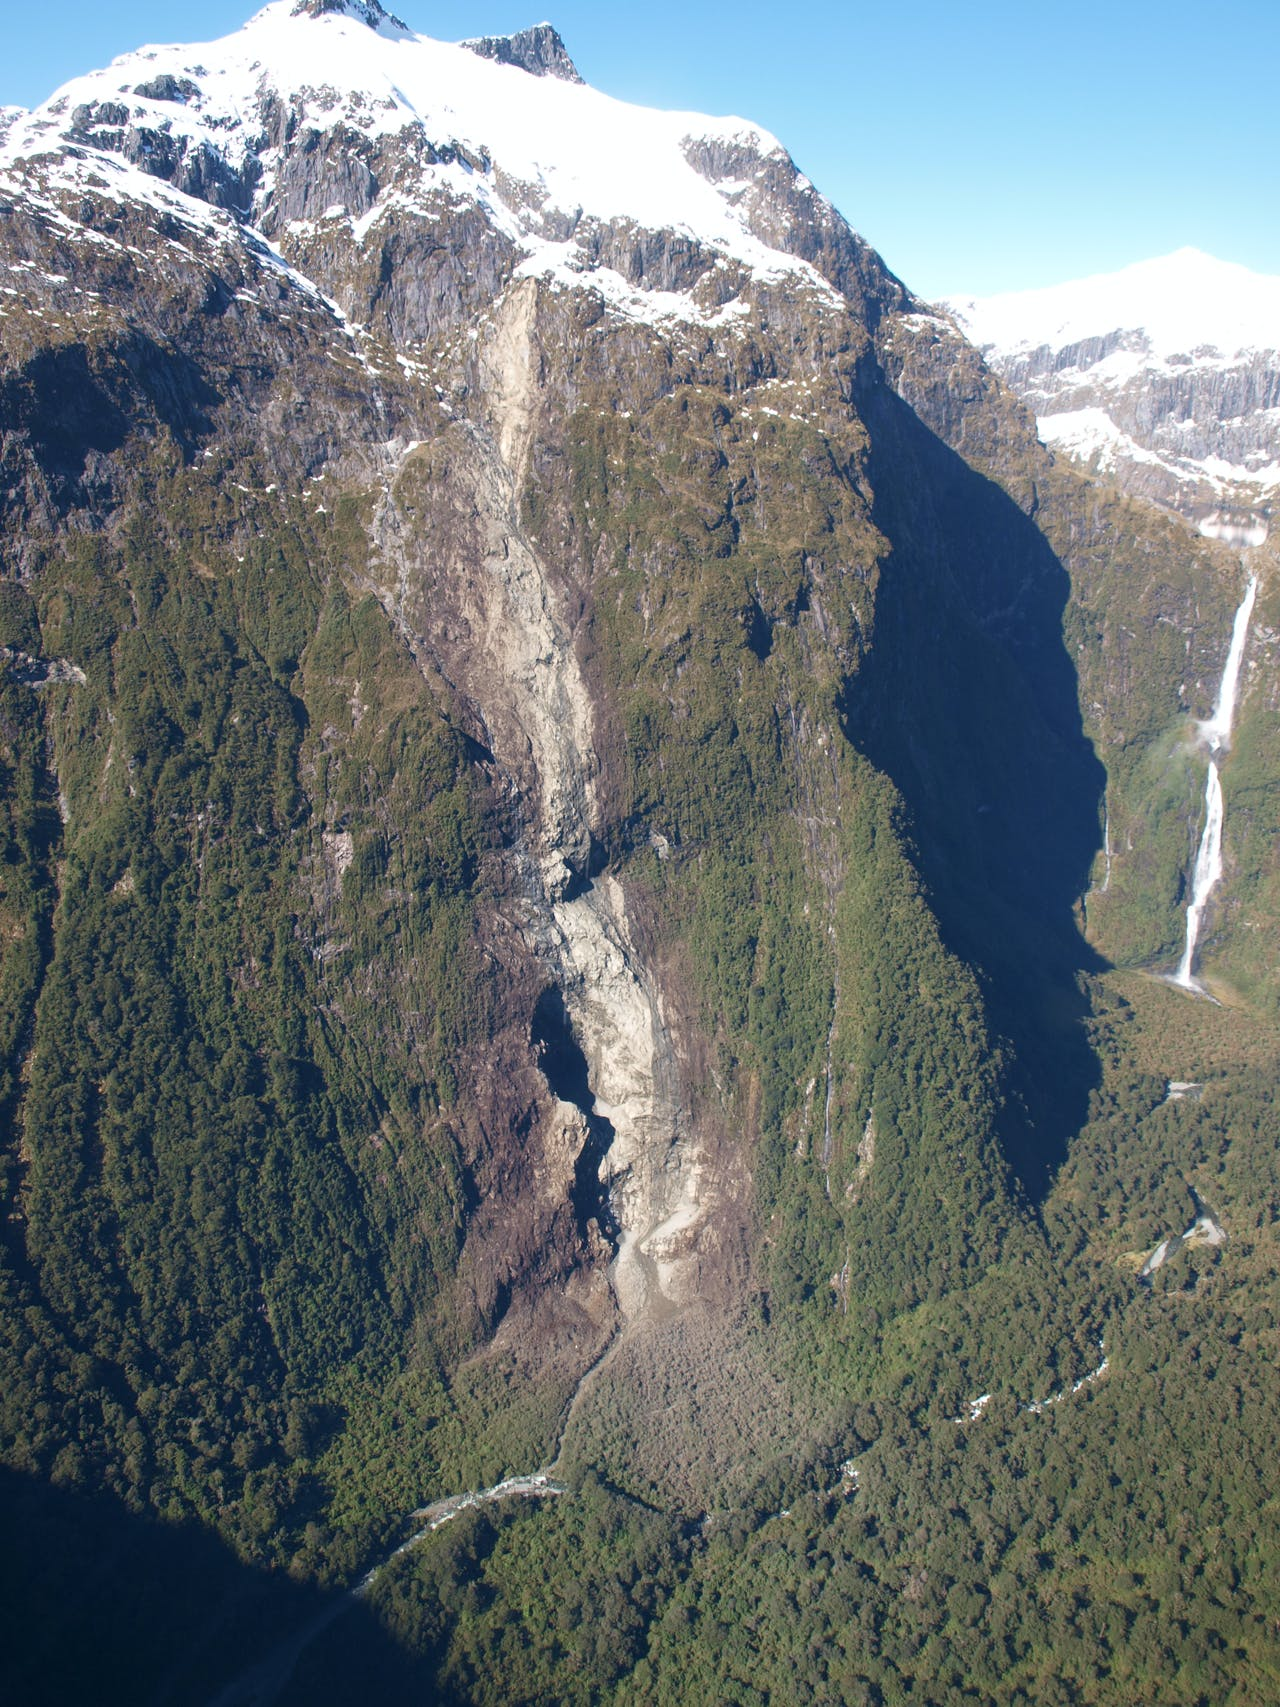 Milford Track trampers no longer have access to Sutherland Falls after a huge rockfall from Mt Hart